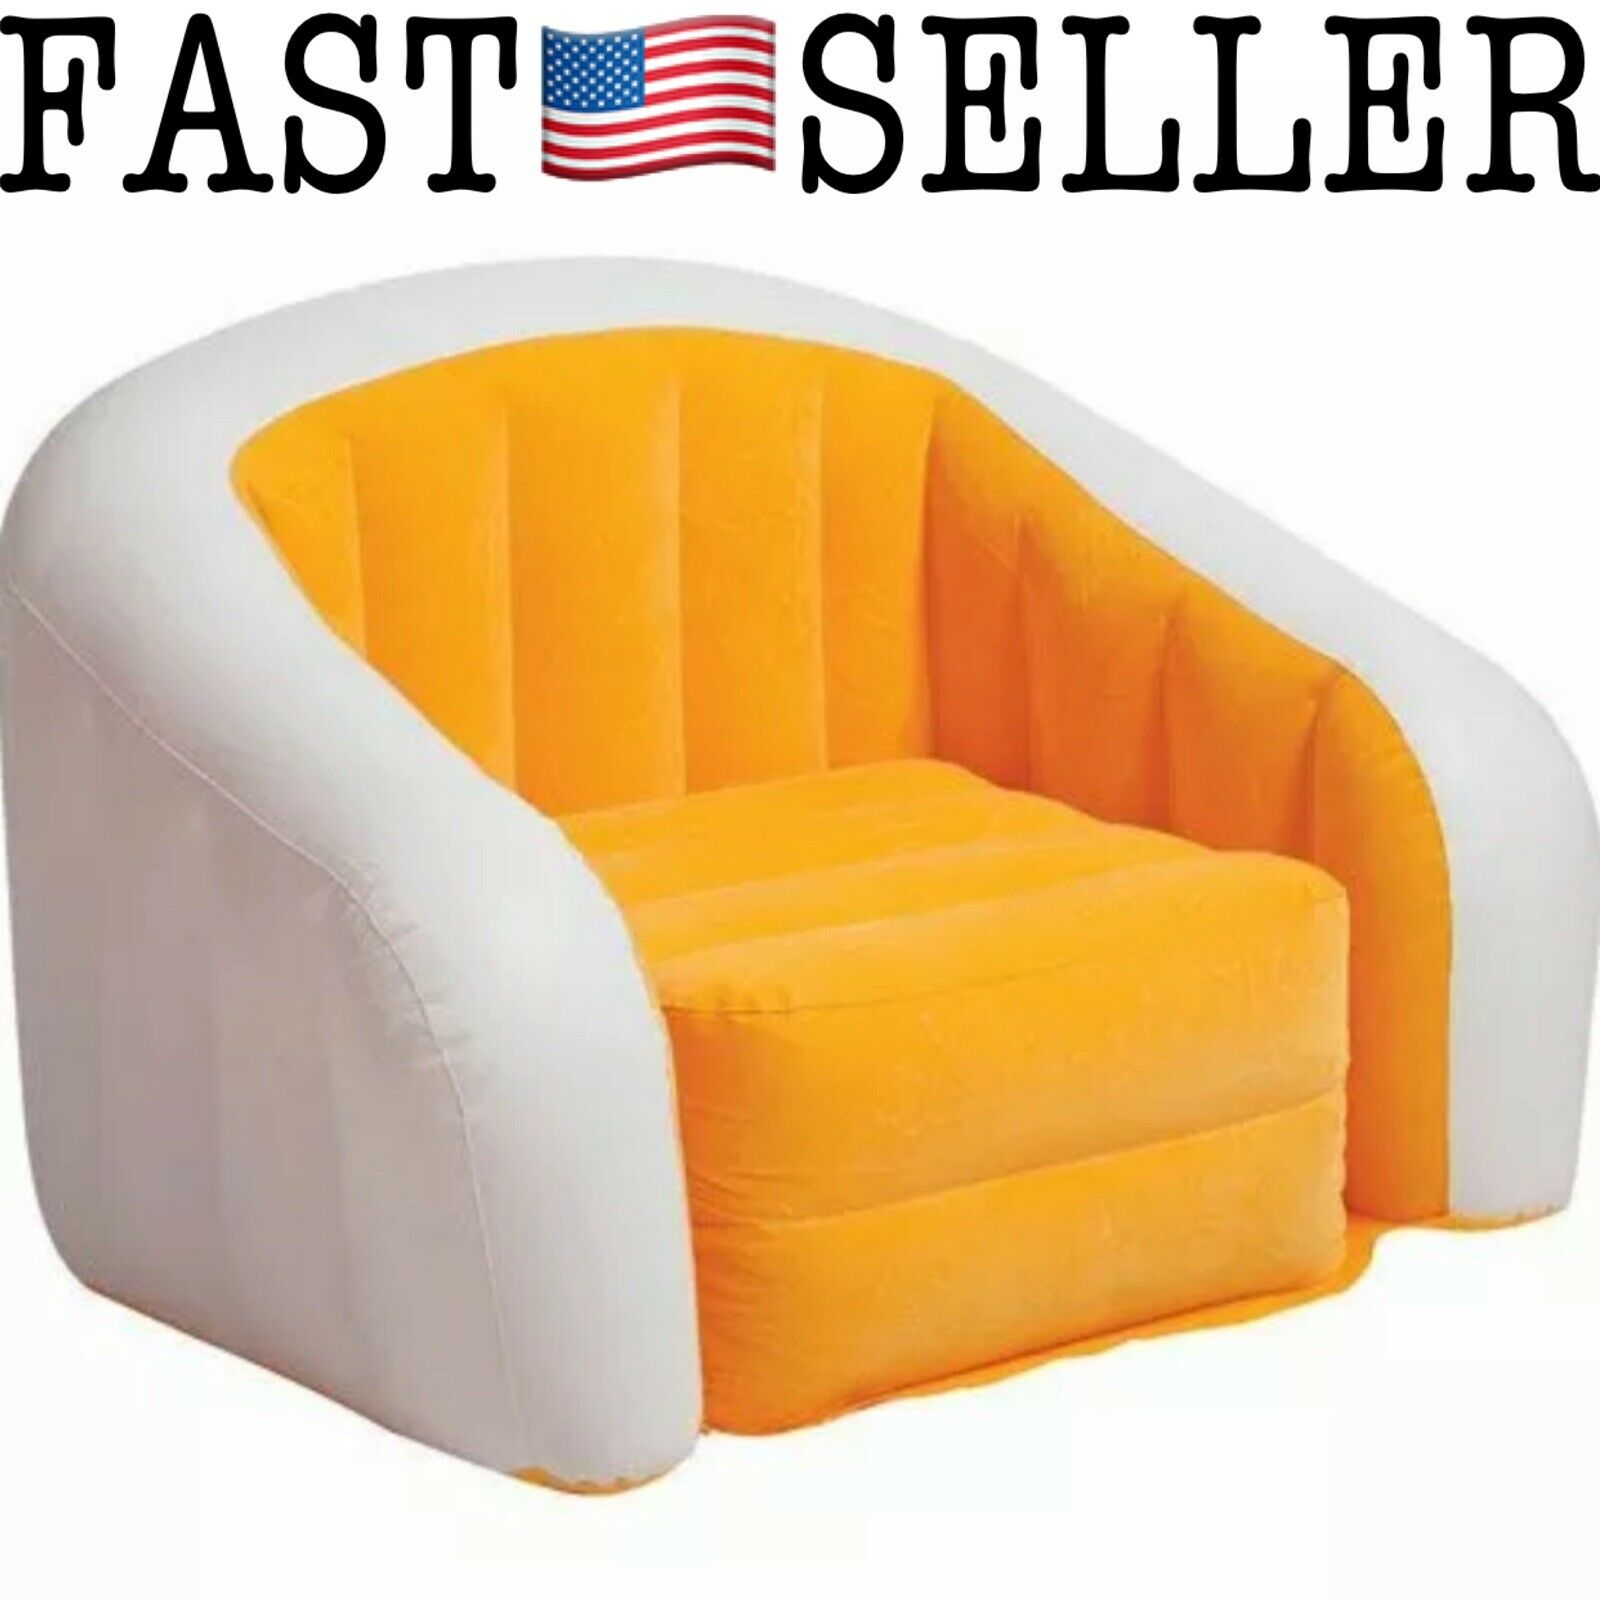 Intex Classic Retro Cafe Club Chair Inflatable - 7 in x 7 in x 7 in -  Orange